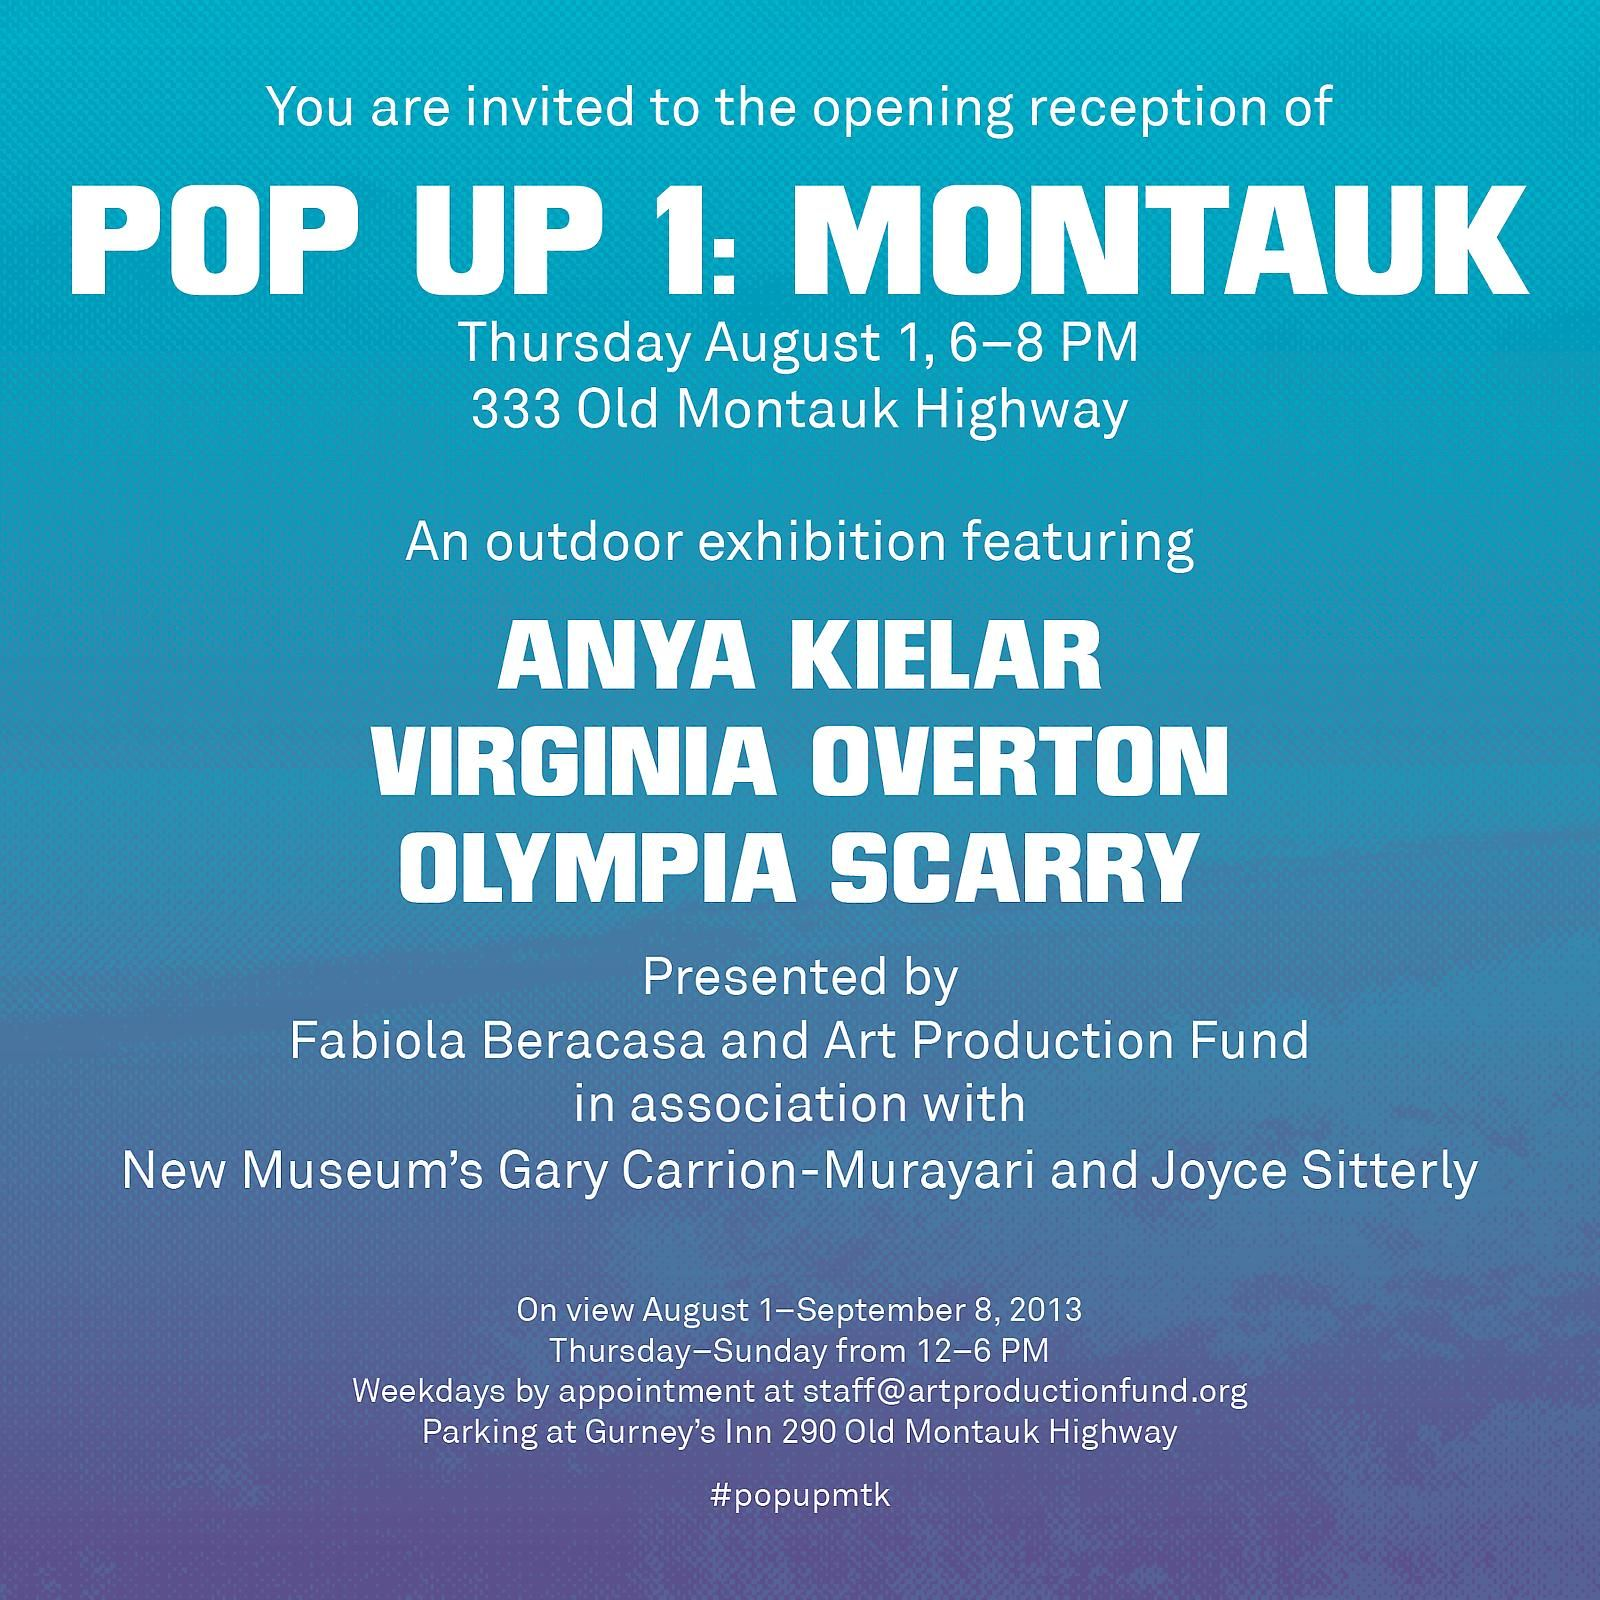 Virginia Overton at Pop Up 1: Montauk